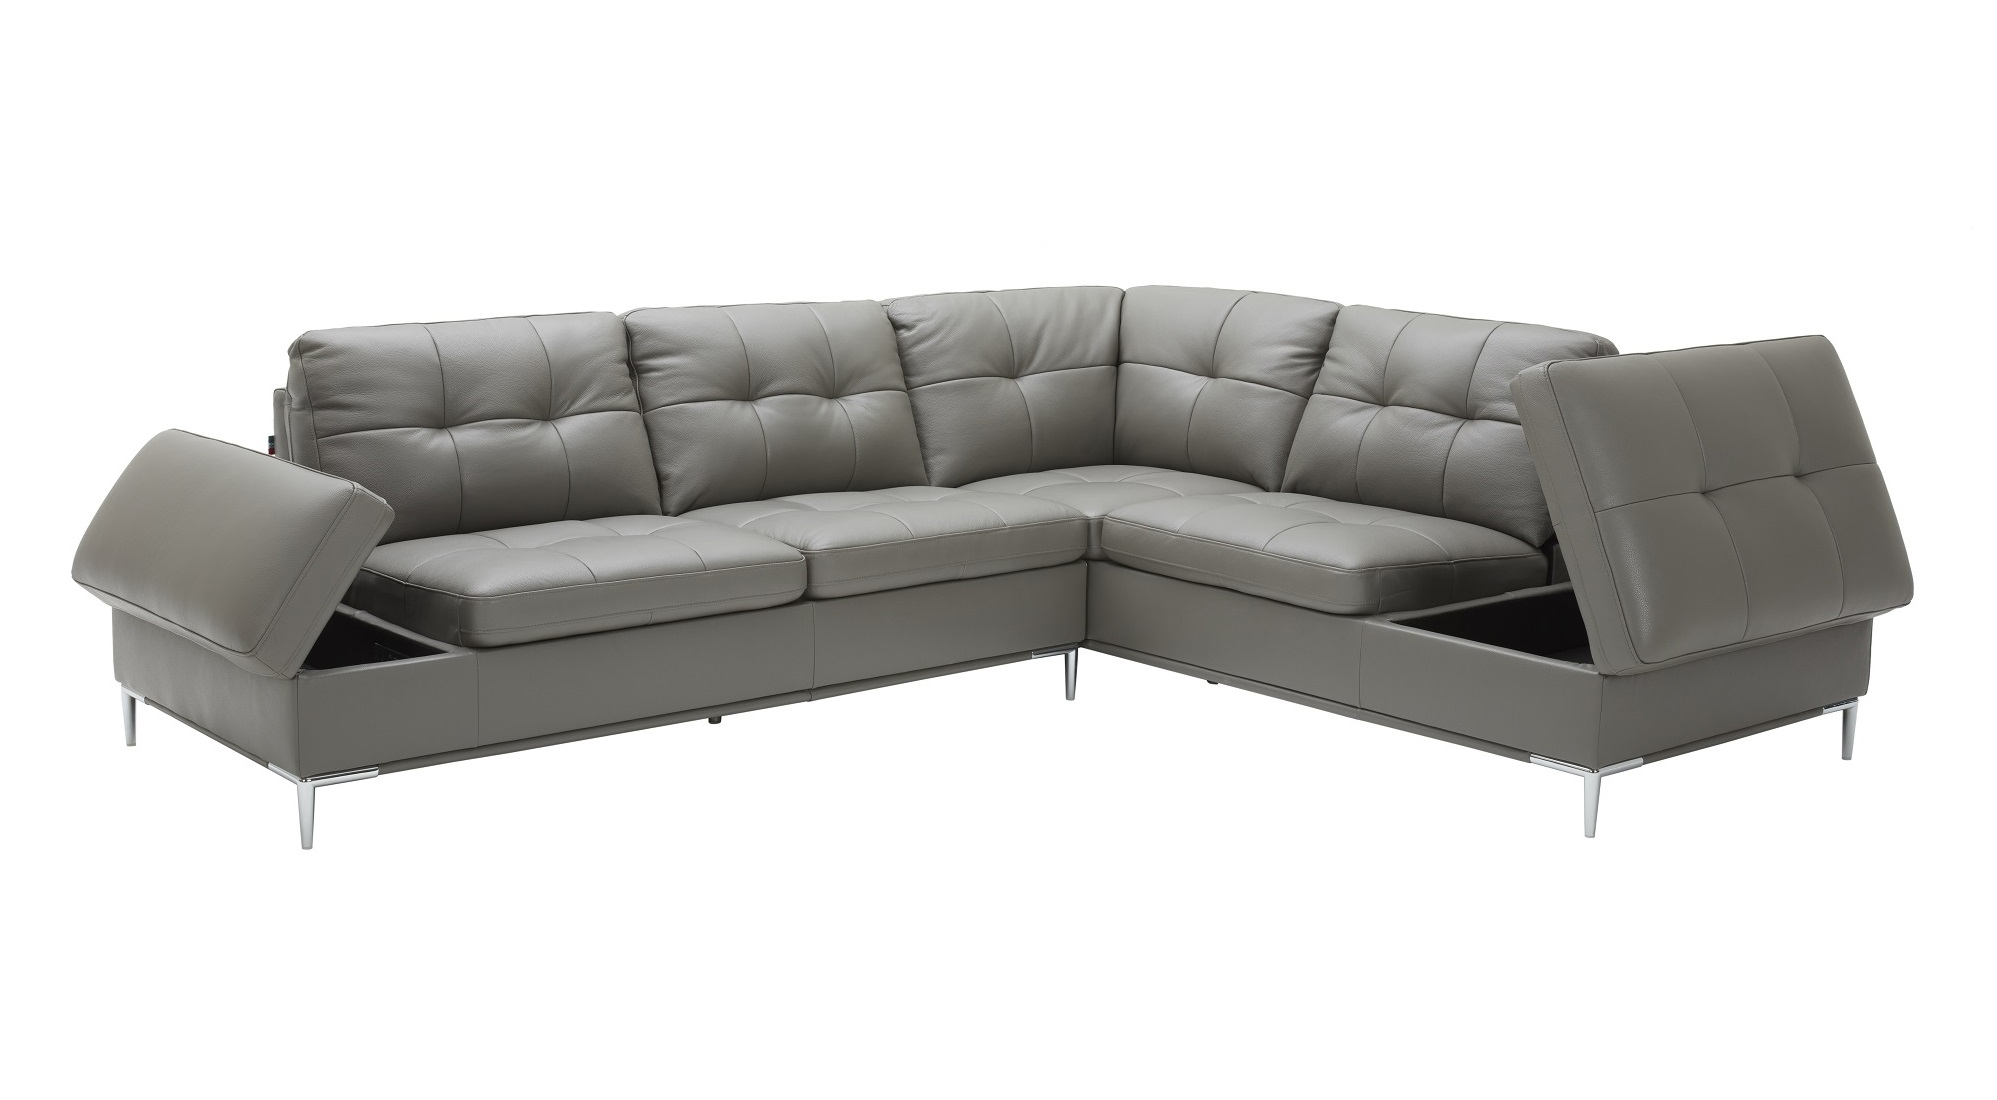 Phenomenal Sophisticated Leather Sectional With Chaise With Pillows Pabps2019 Chair Design Images Pabps2019Com